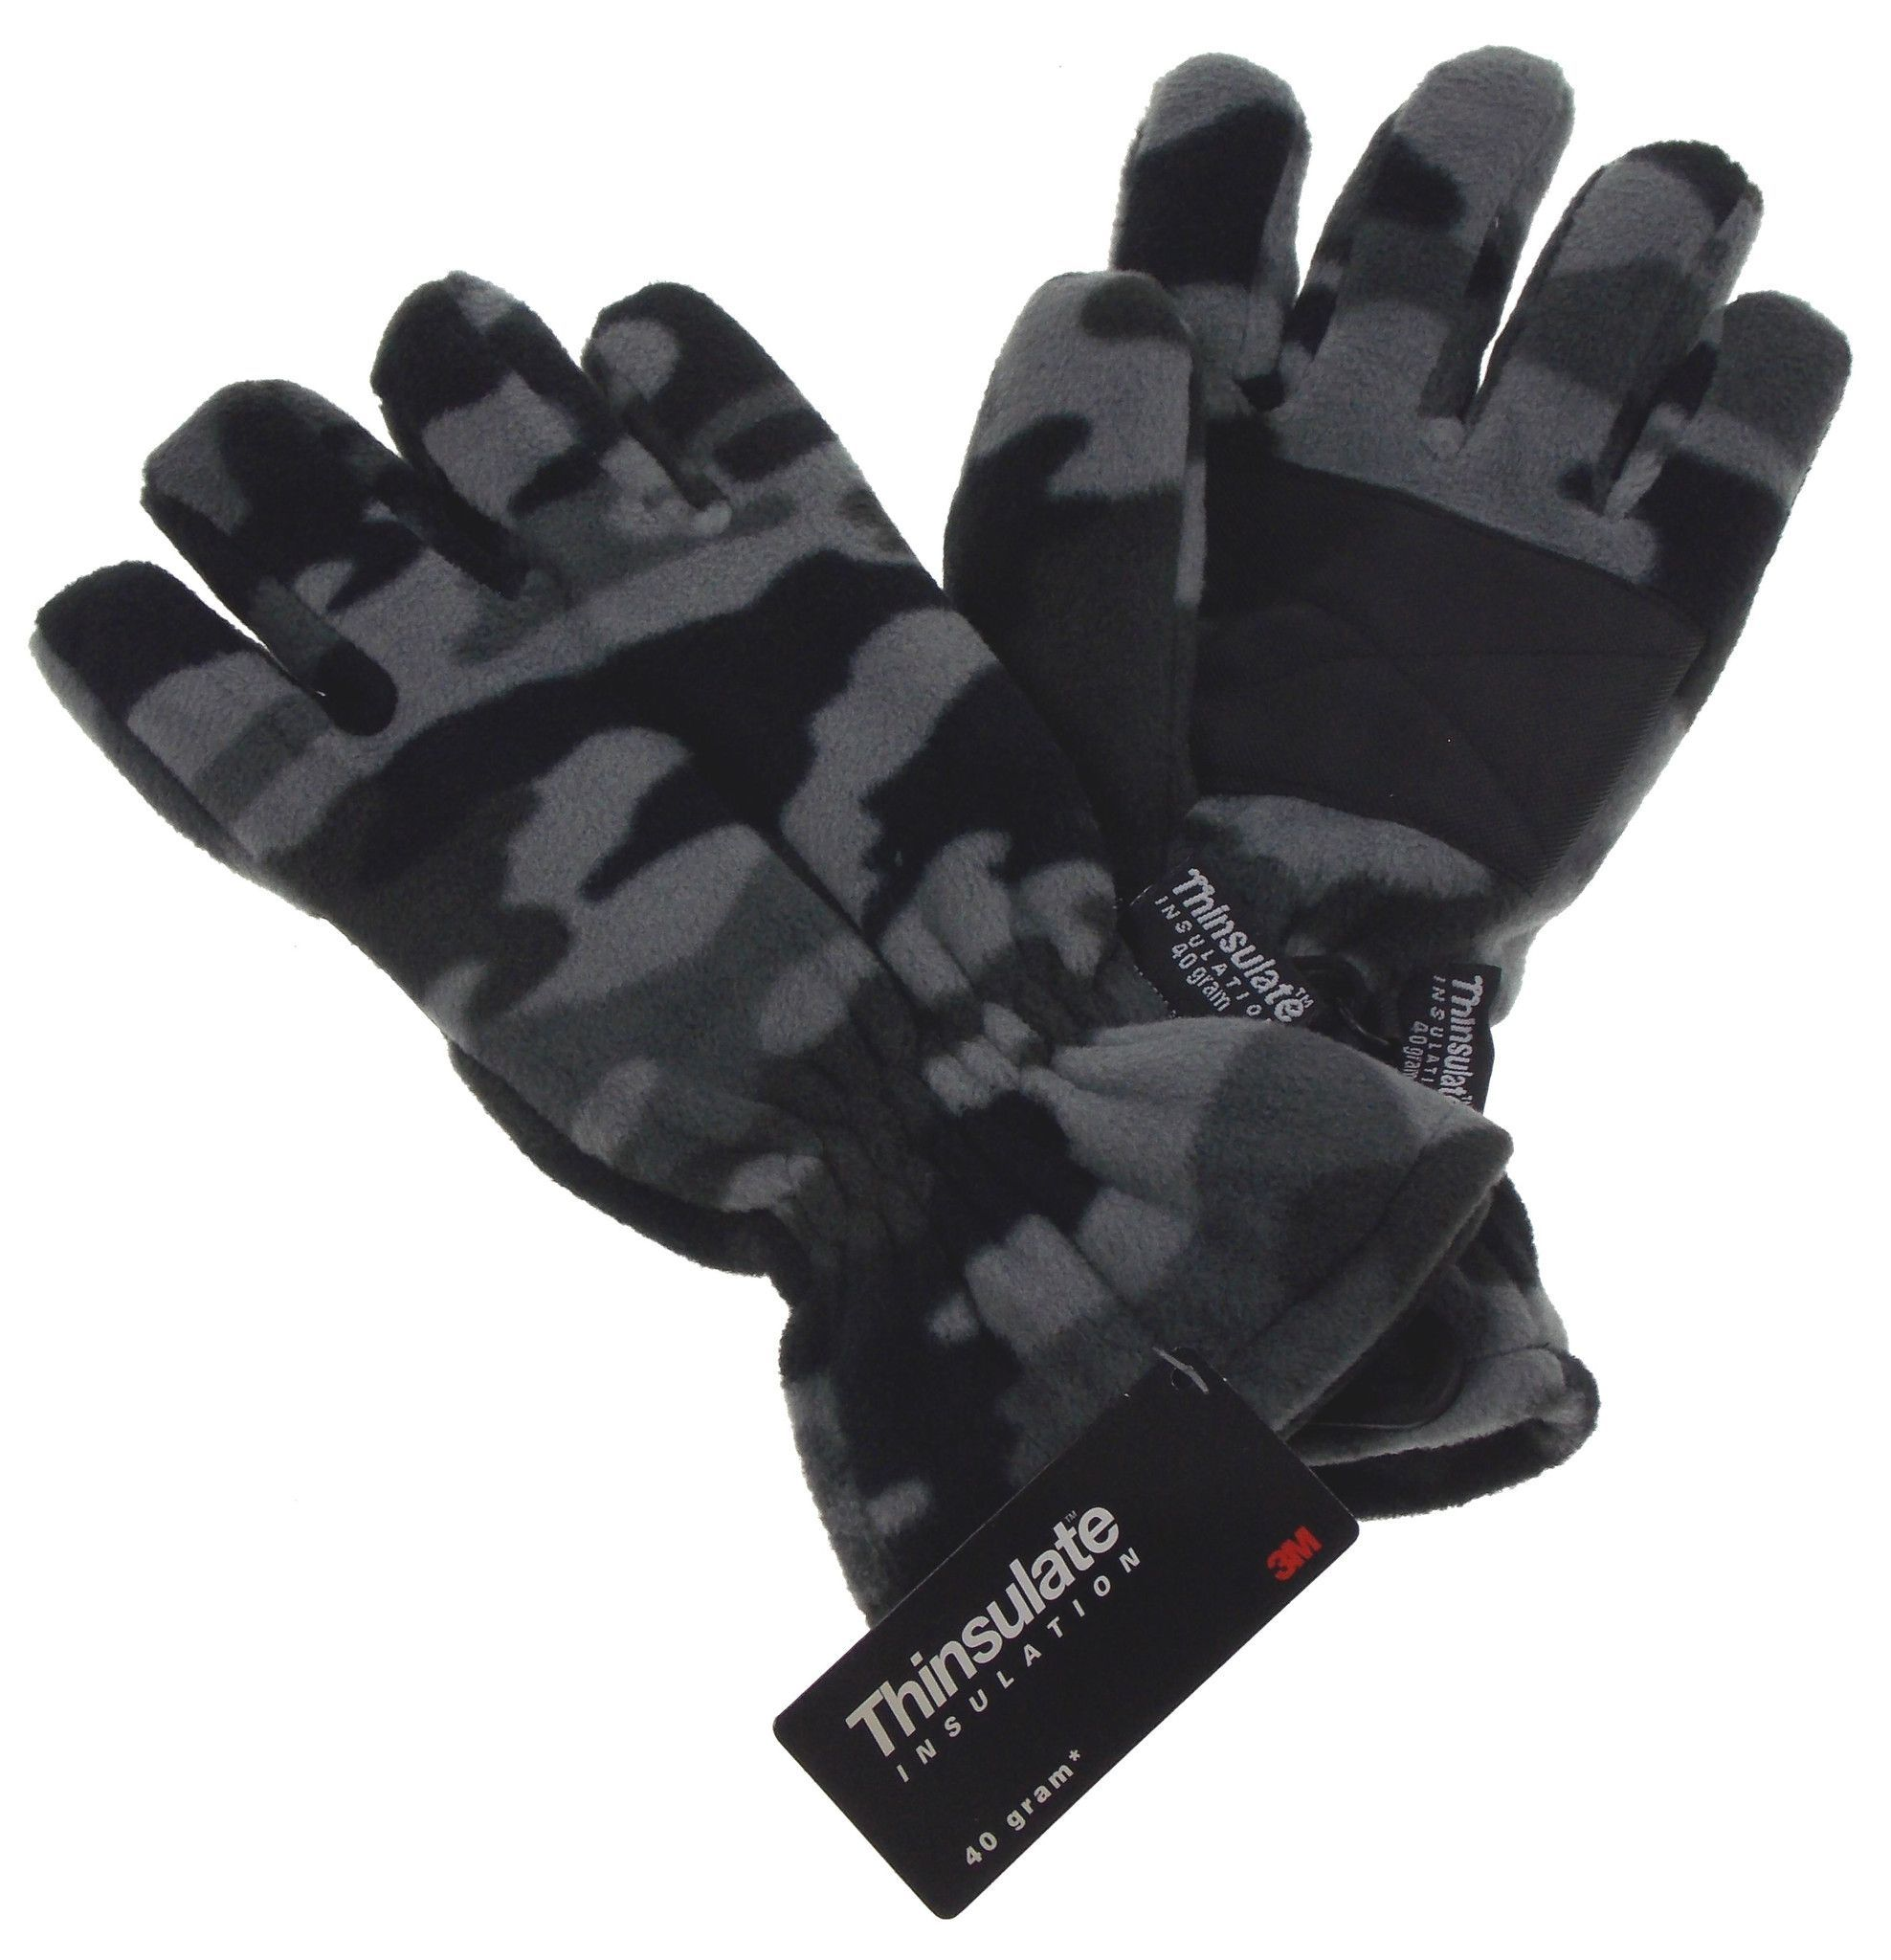 Mens Mittens Fleece Lined Thinsulate Insulation 3m Adults Winter Warm Gloves